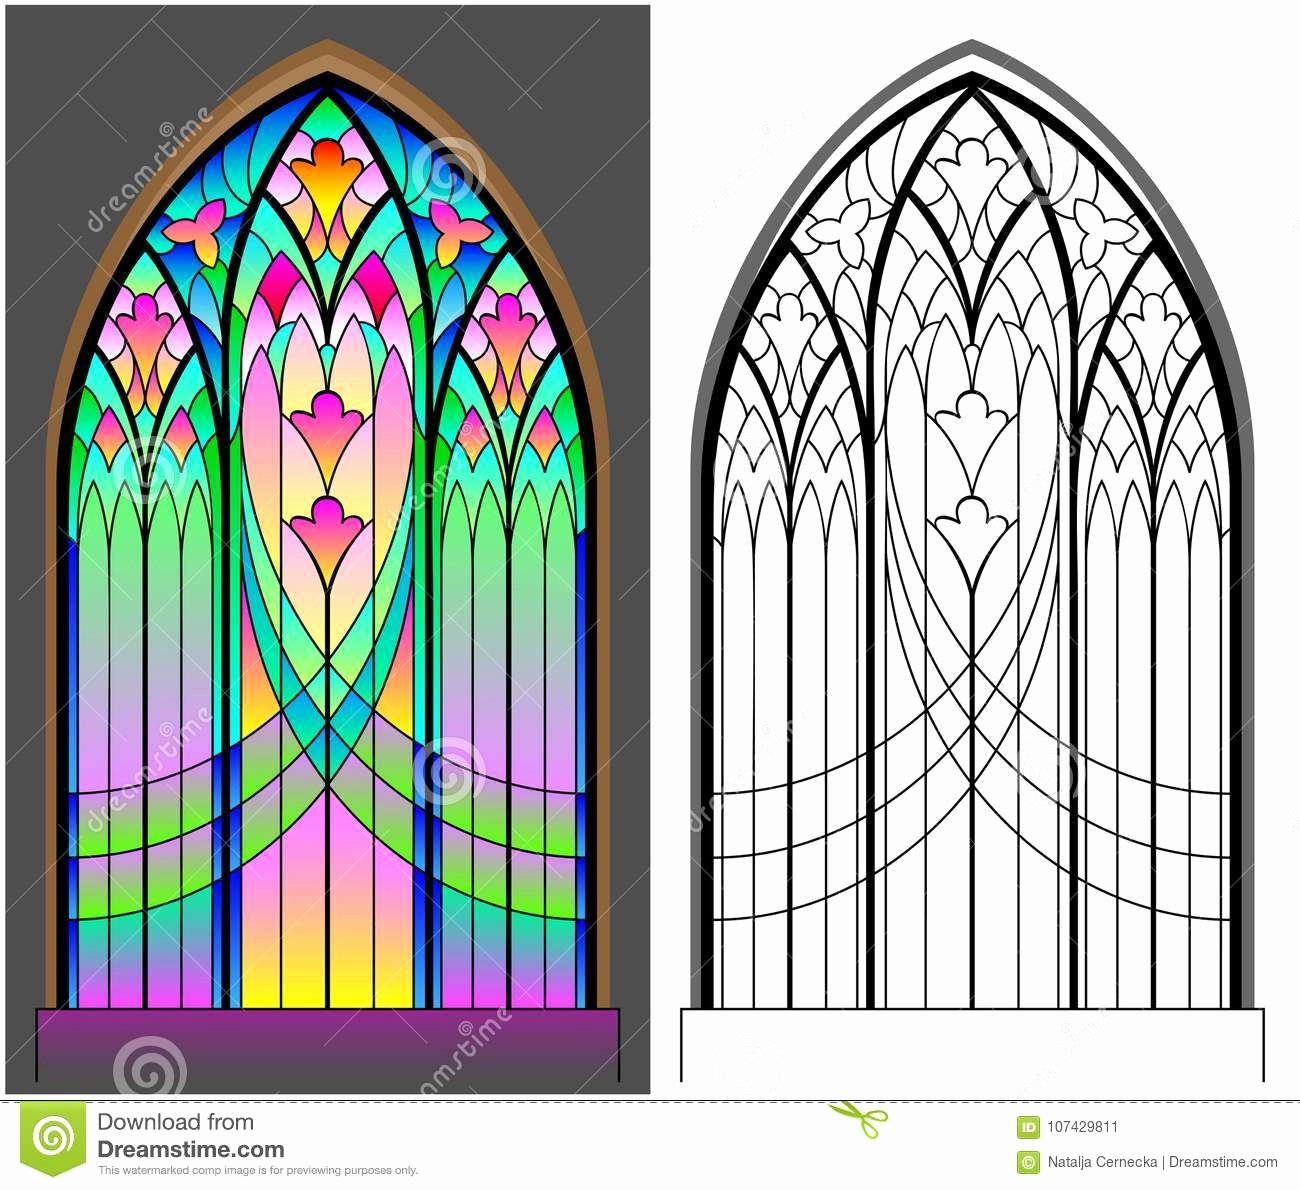 Stained Glass Windows Worksheet Luxury Colorful and Black and White Pattern Gothic Stained